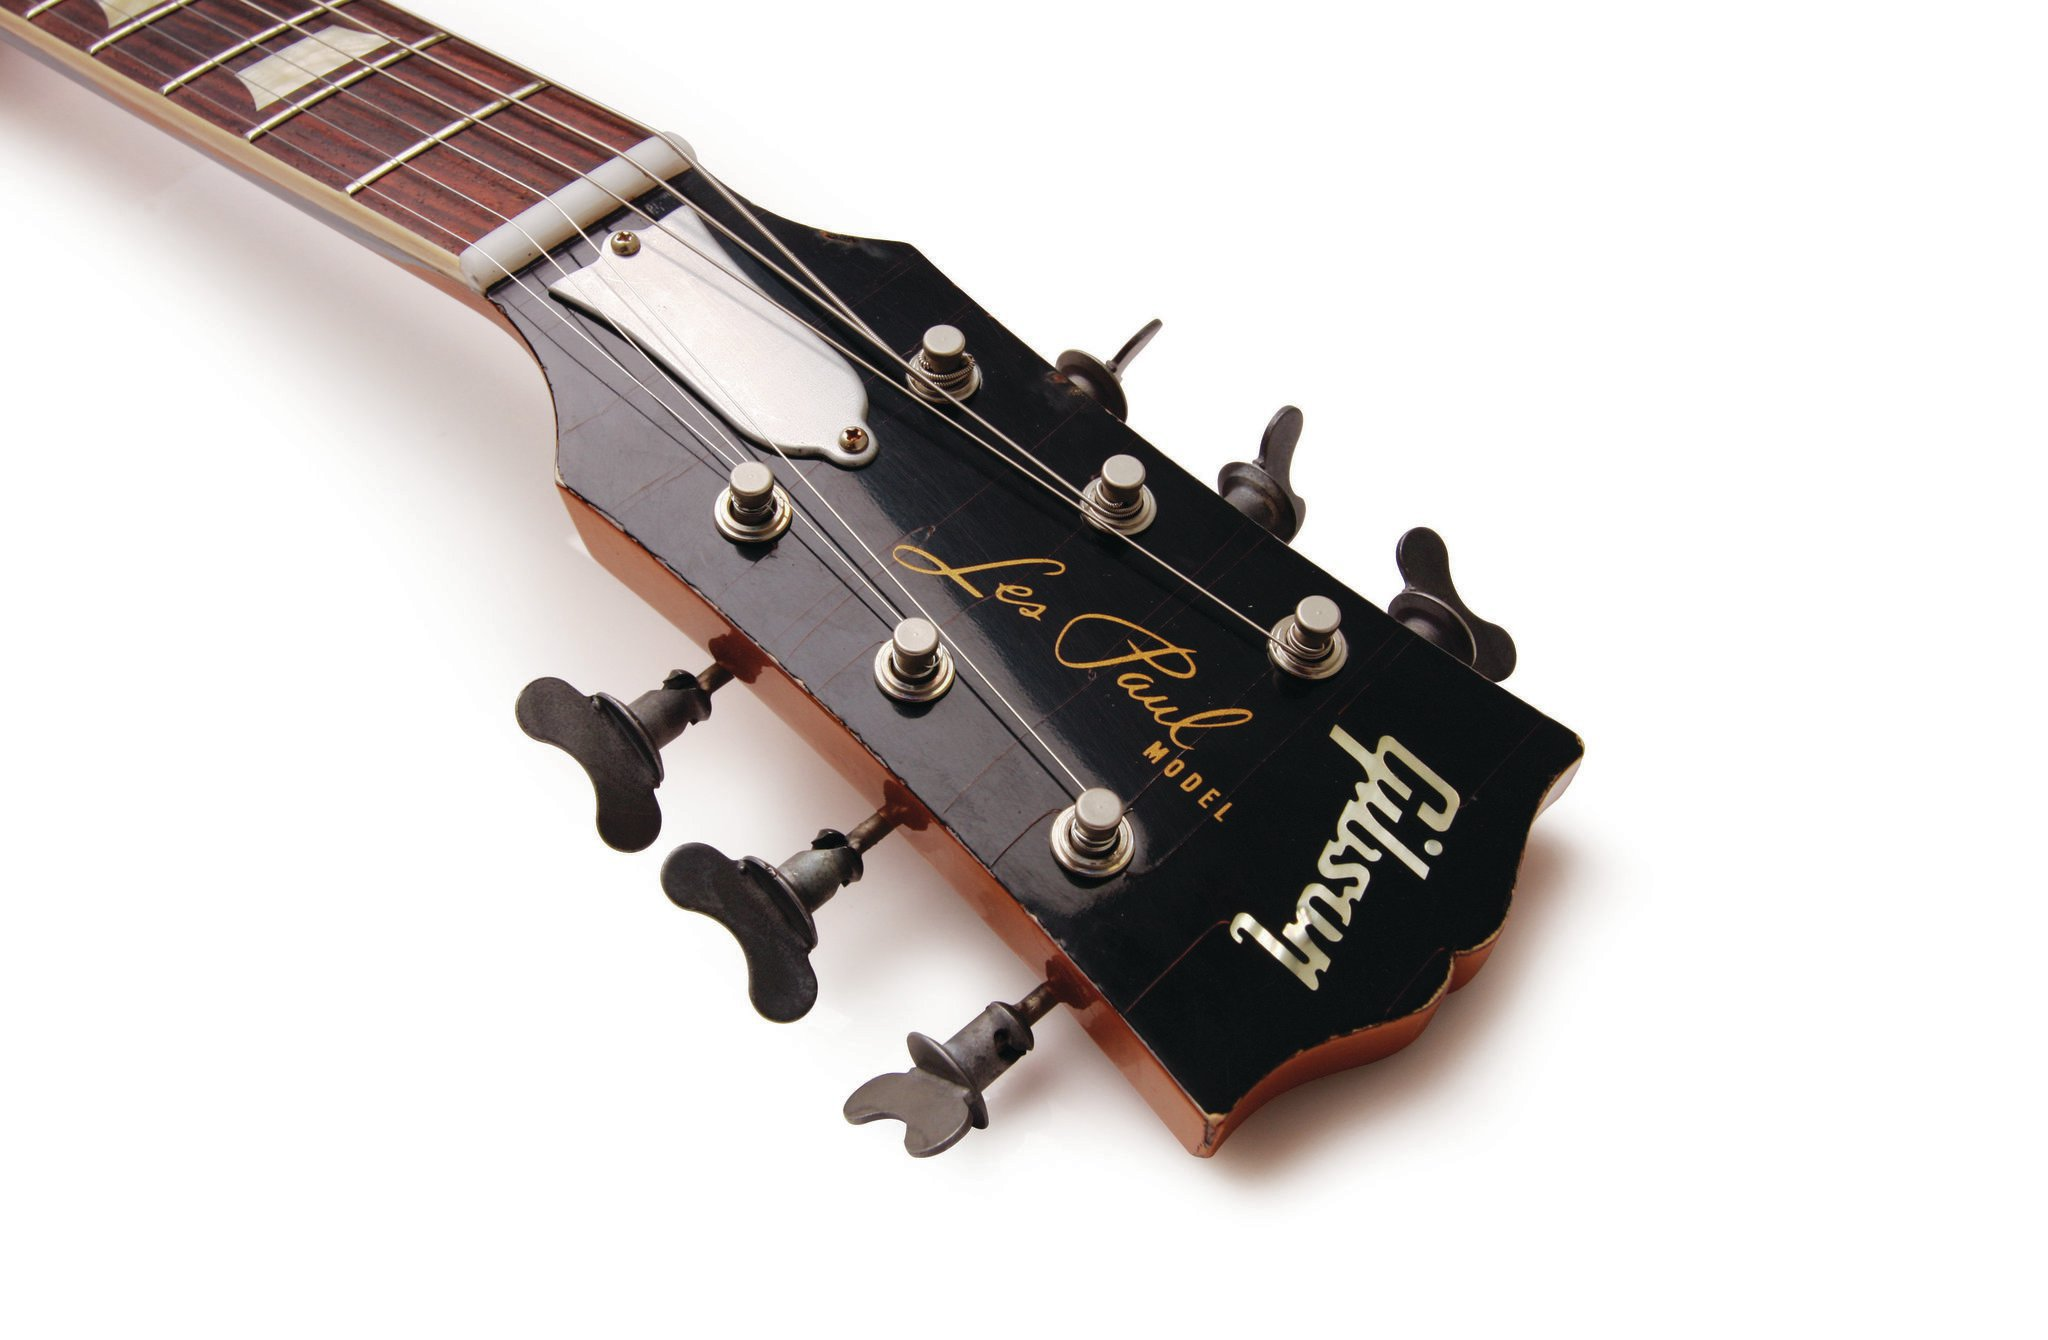 Quarter-turn fasteners are used on the tuning pegs.